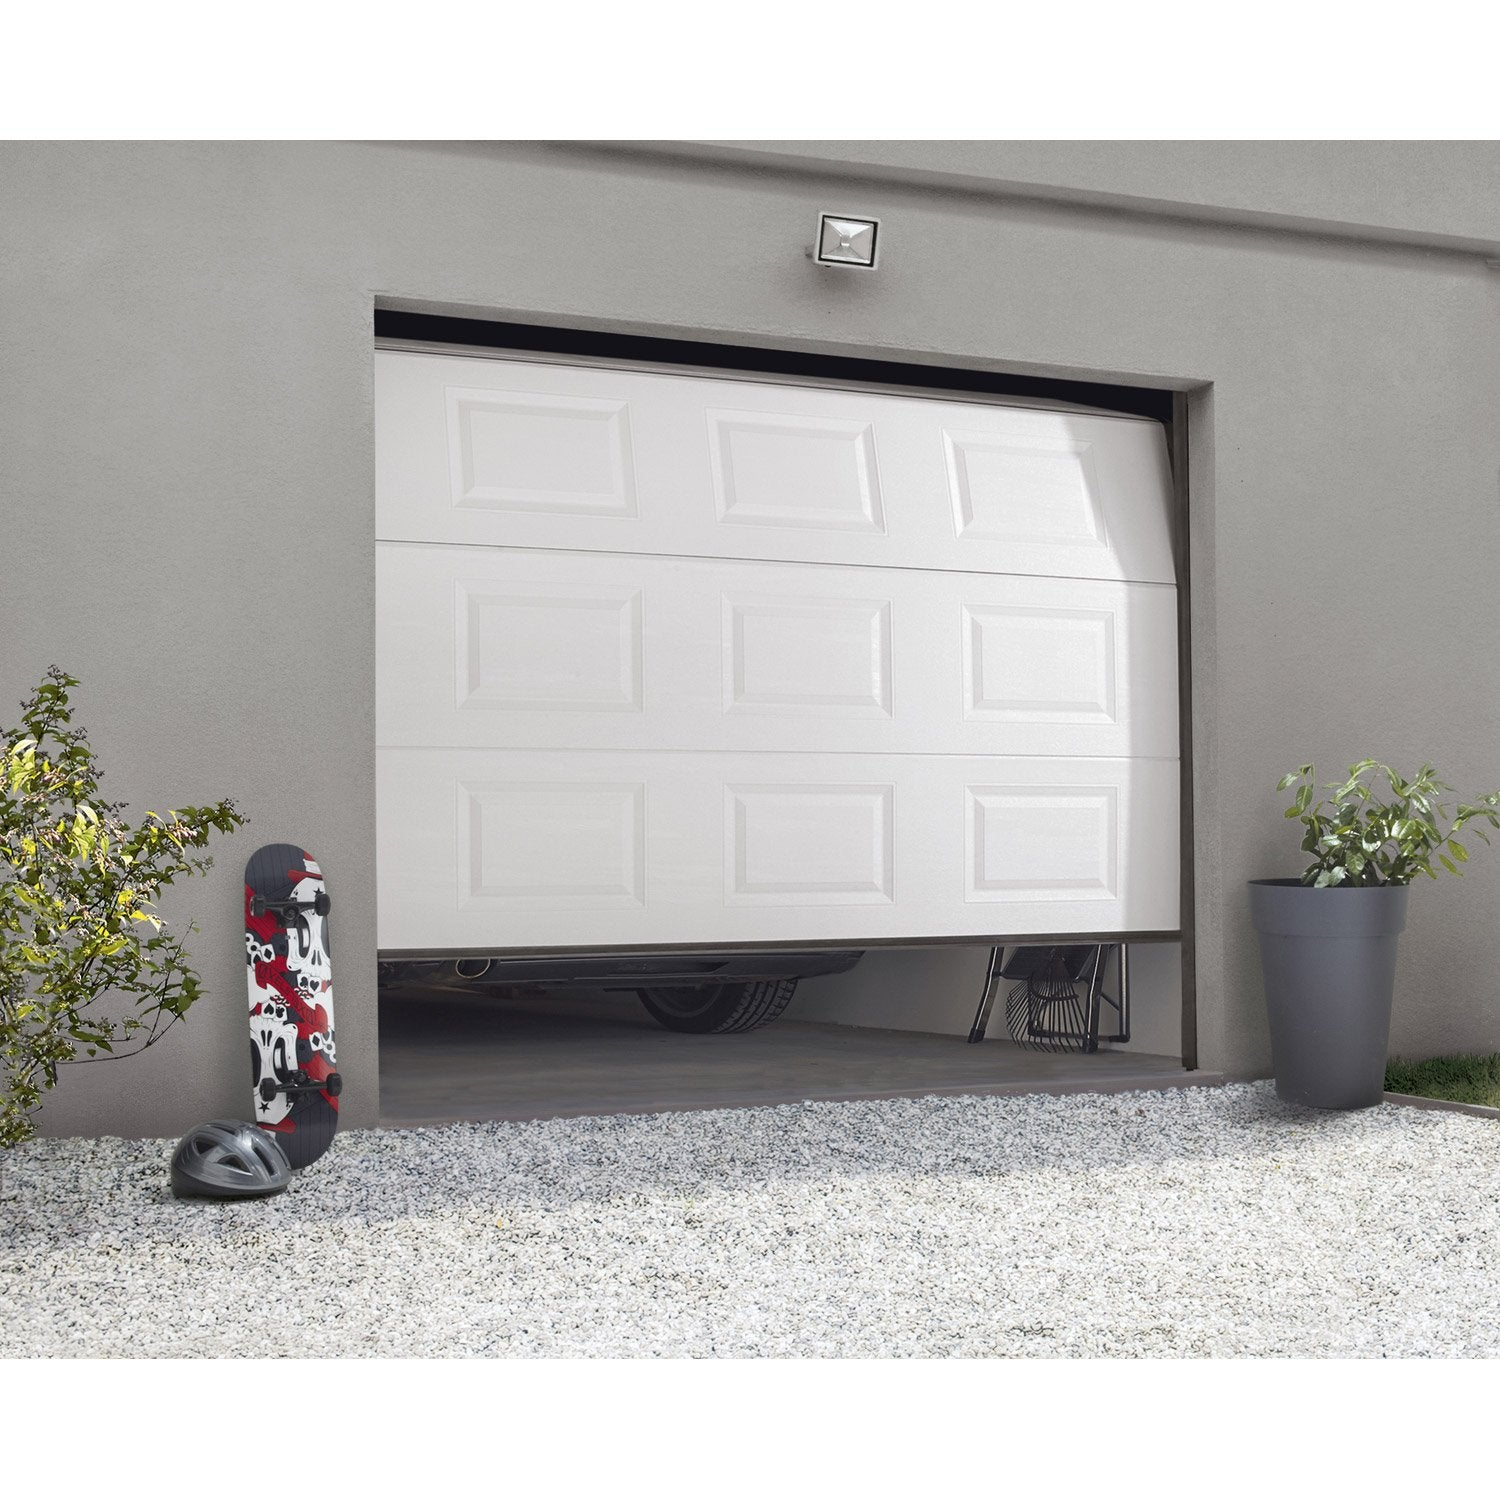 Porte de garage sectionnelle motoris e artens essentiel h for Porte de garage sectionnelle 220 x 200